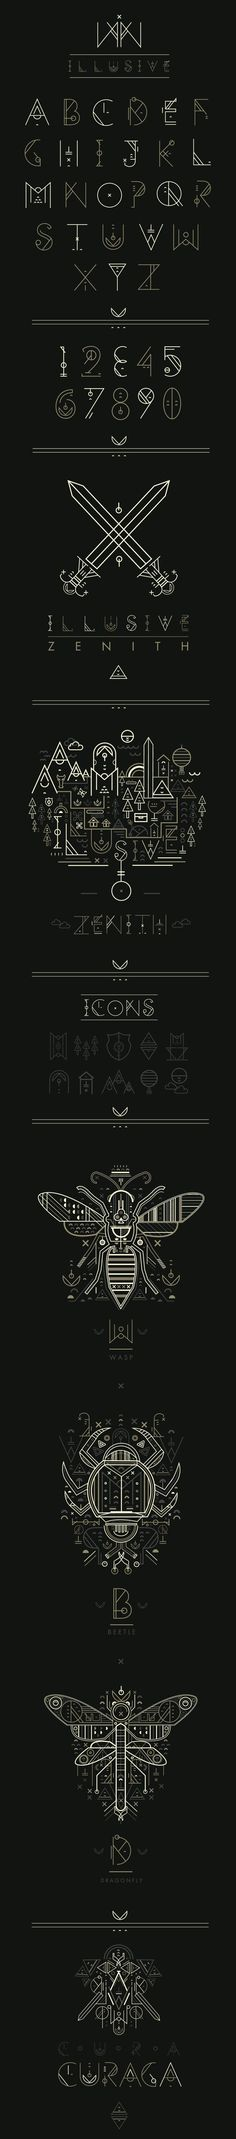 I suspect Petros Afshar to have spent a lot of time playing RPGs, and I'm doing the victory dance of Final Fantasy for this great typographic work.